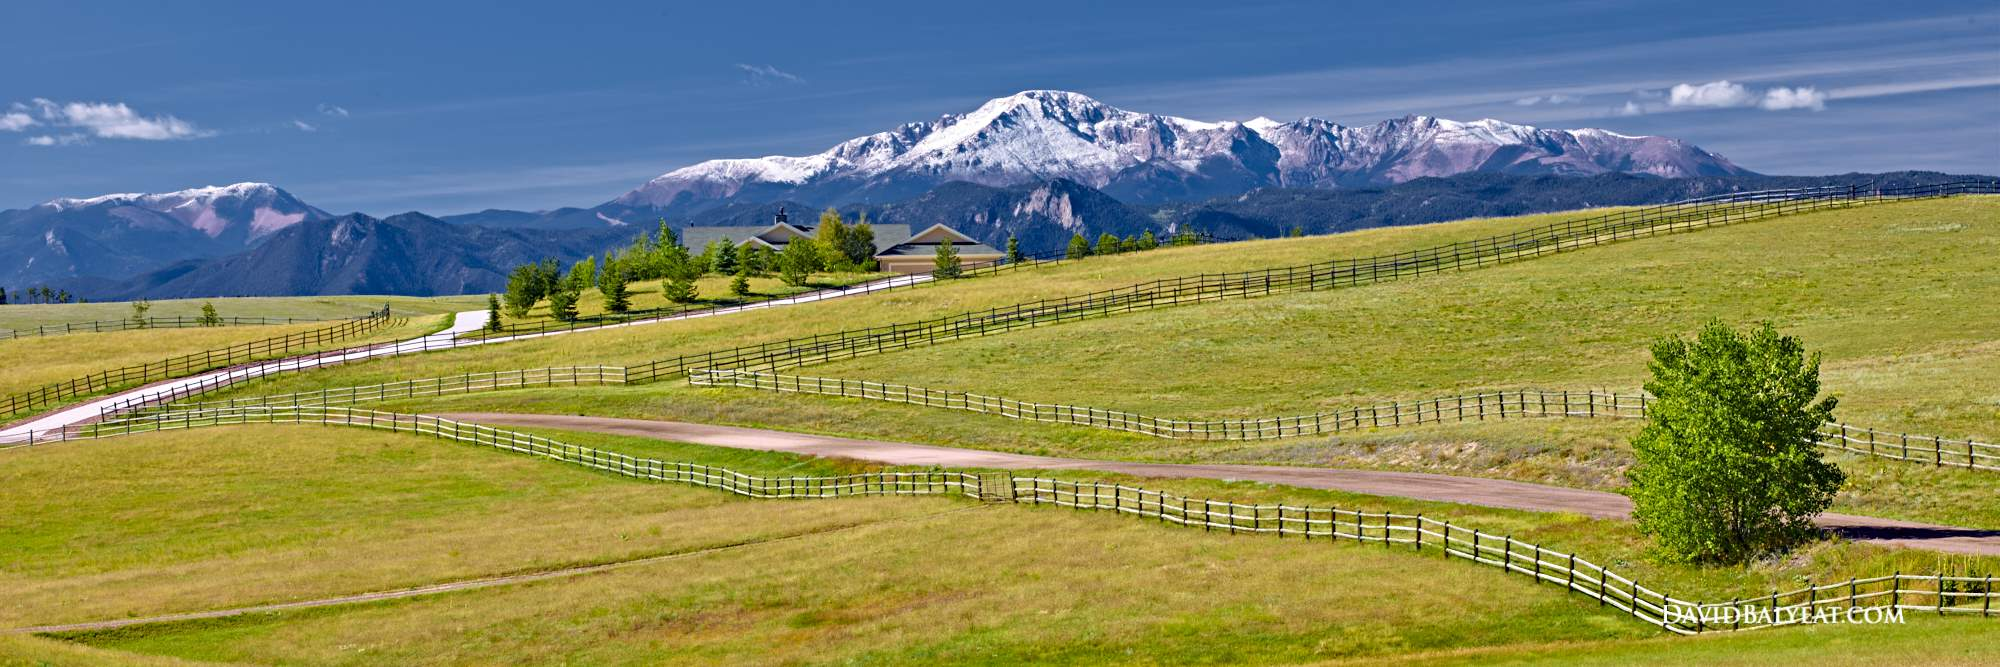 Pikes Peak Colorado Springs view high definition HD professional photography